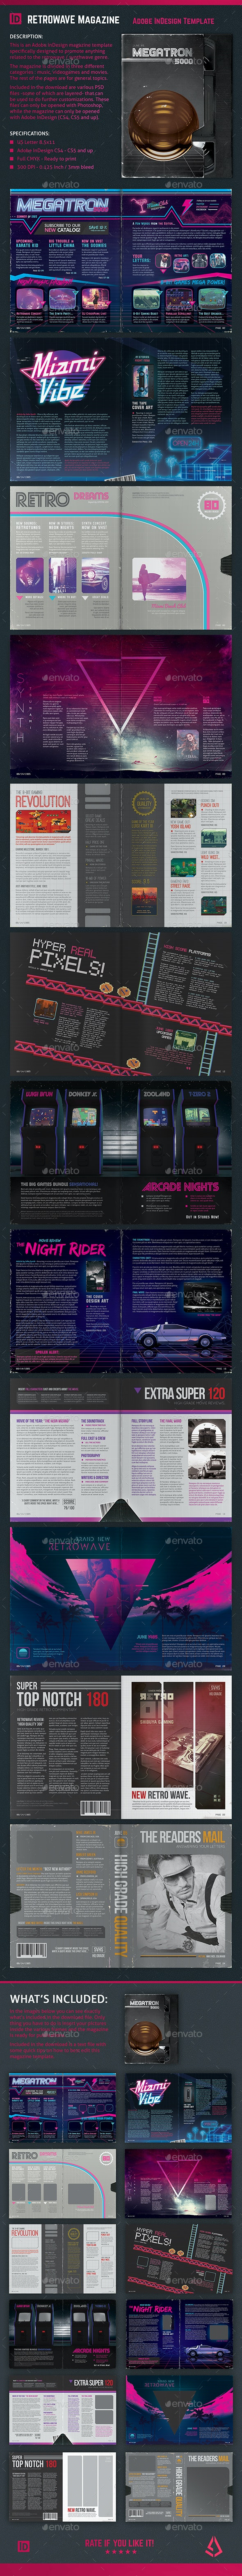 Retrowave Magazine Template Synthwave 24 Pages Indesign - Magazines Print Templates